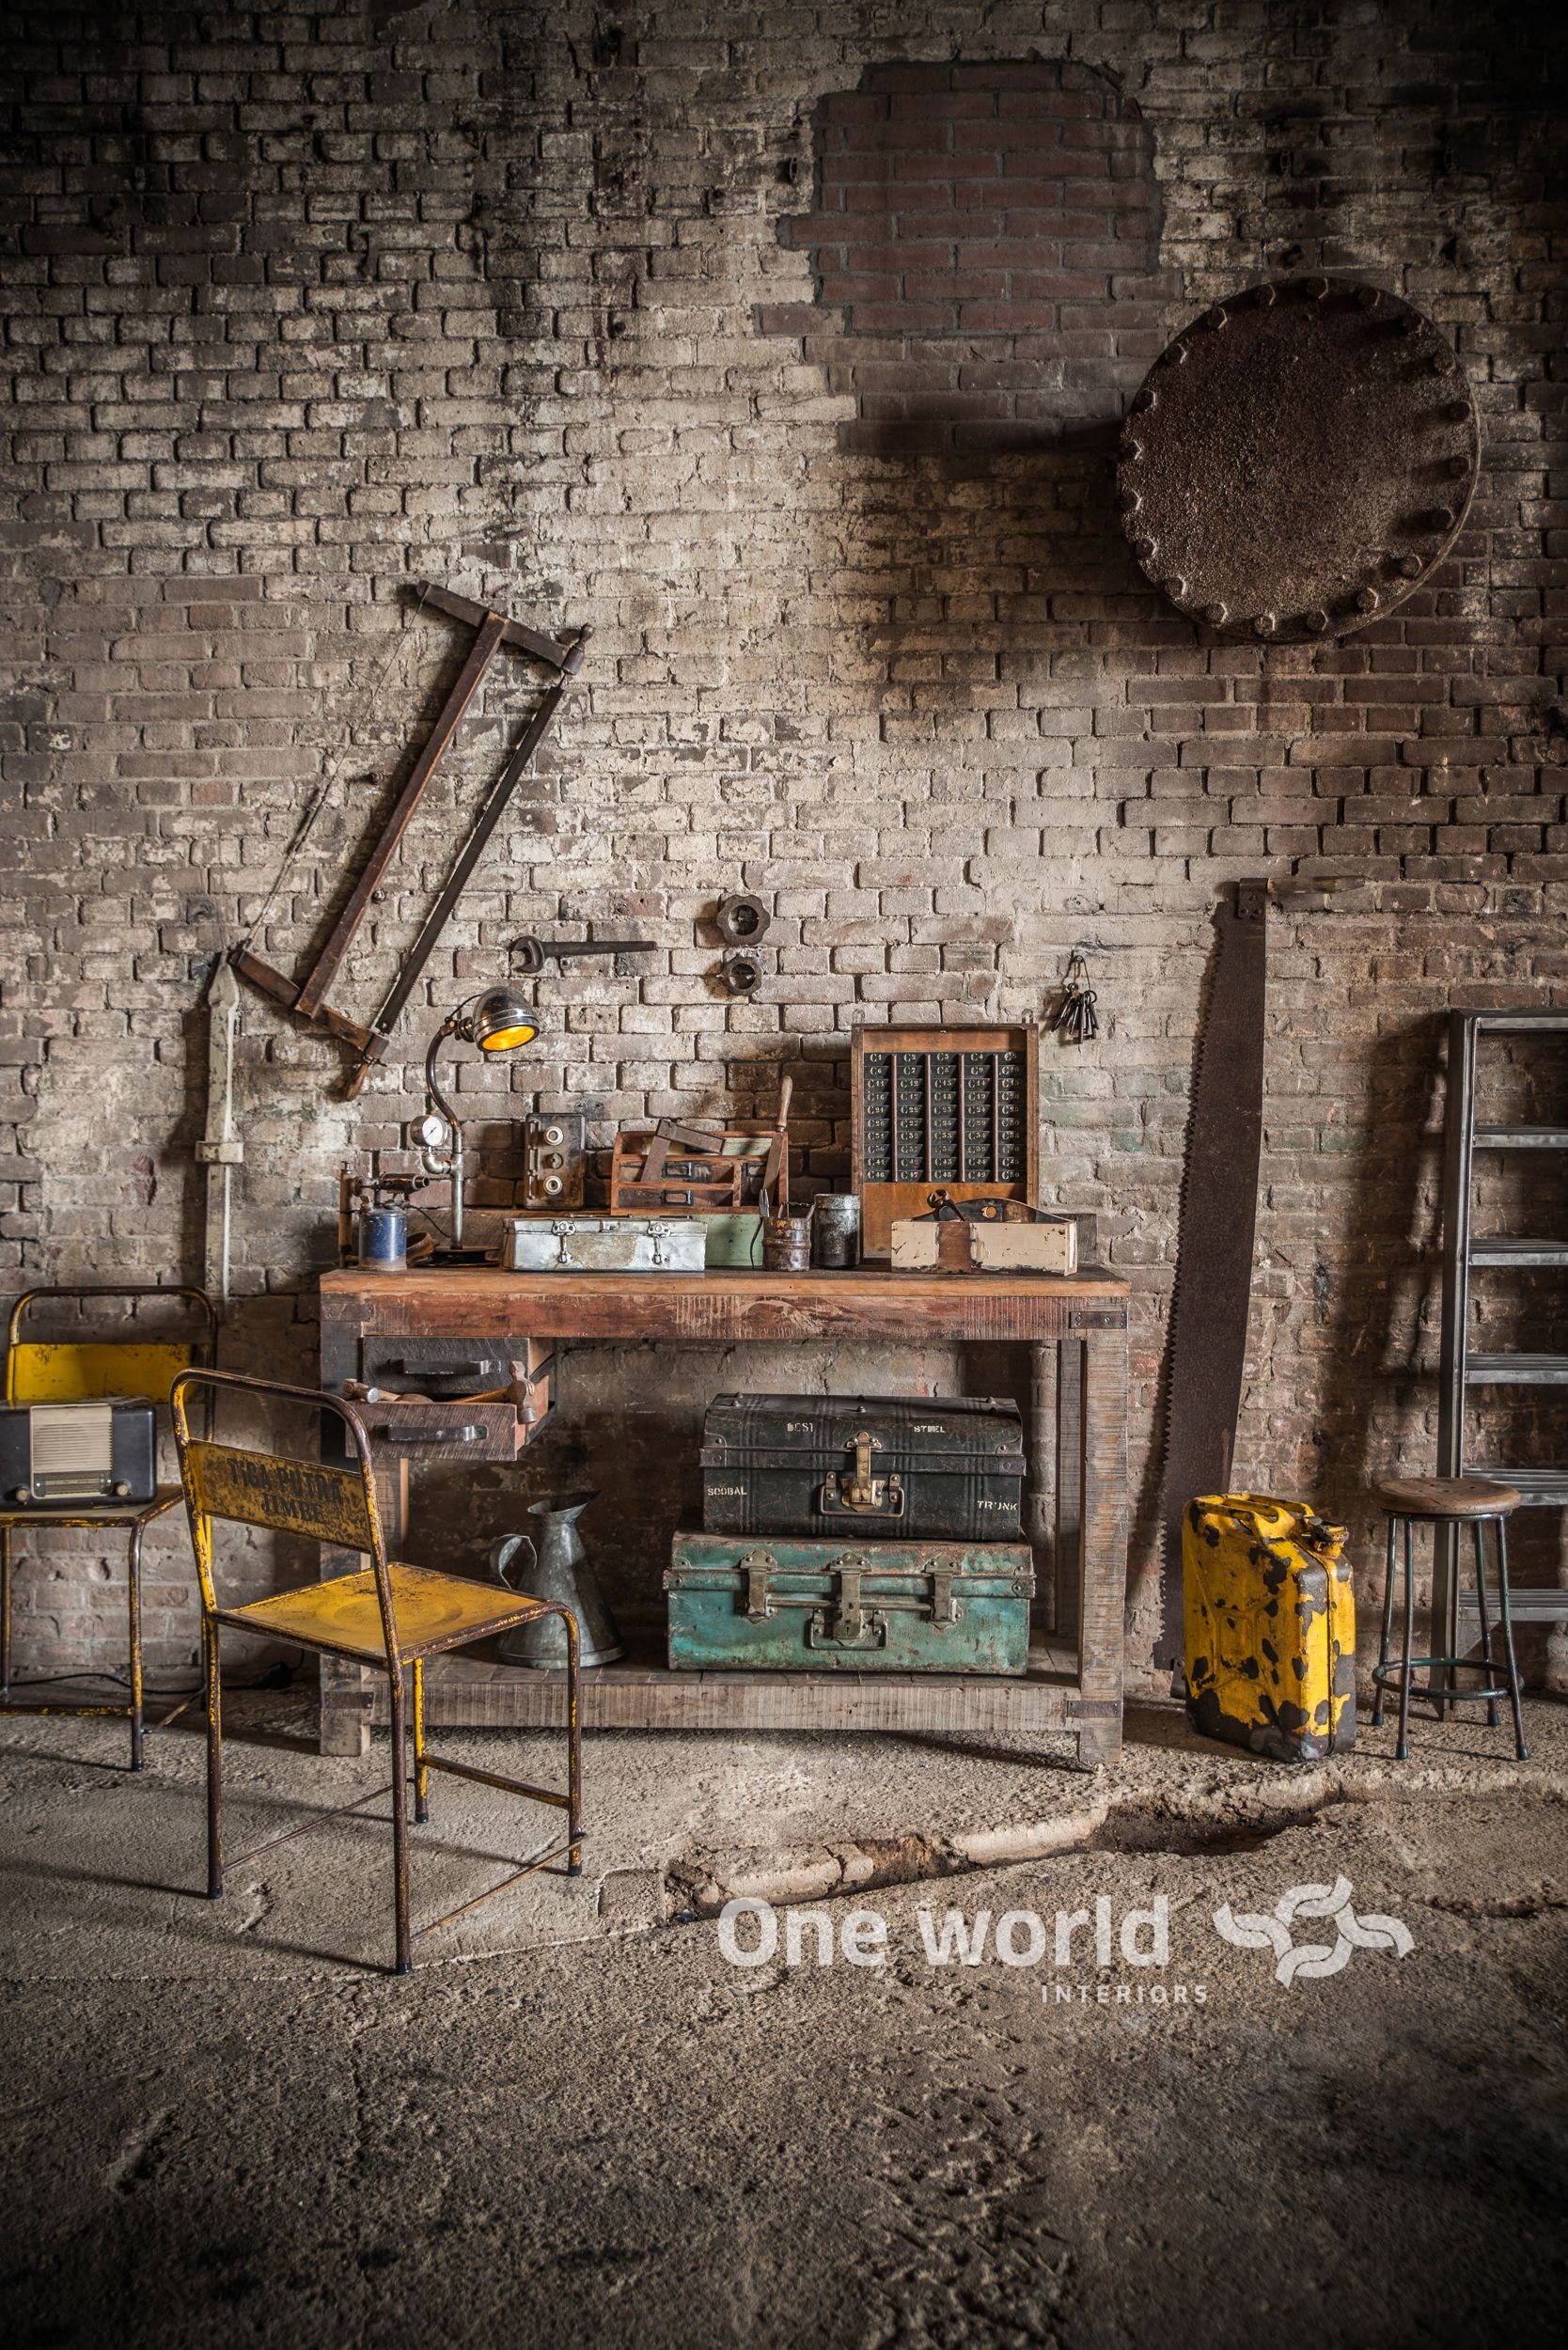 Mobilier Jardin Bois Génial E World Interiors Factory Work Bench Picture Paulina Of 29 Charmant Mobilier Jardin Bois